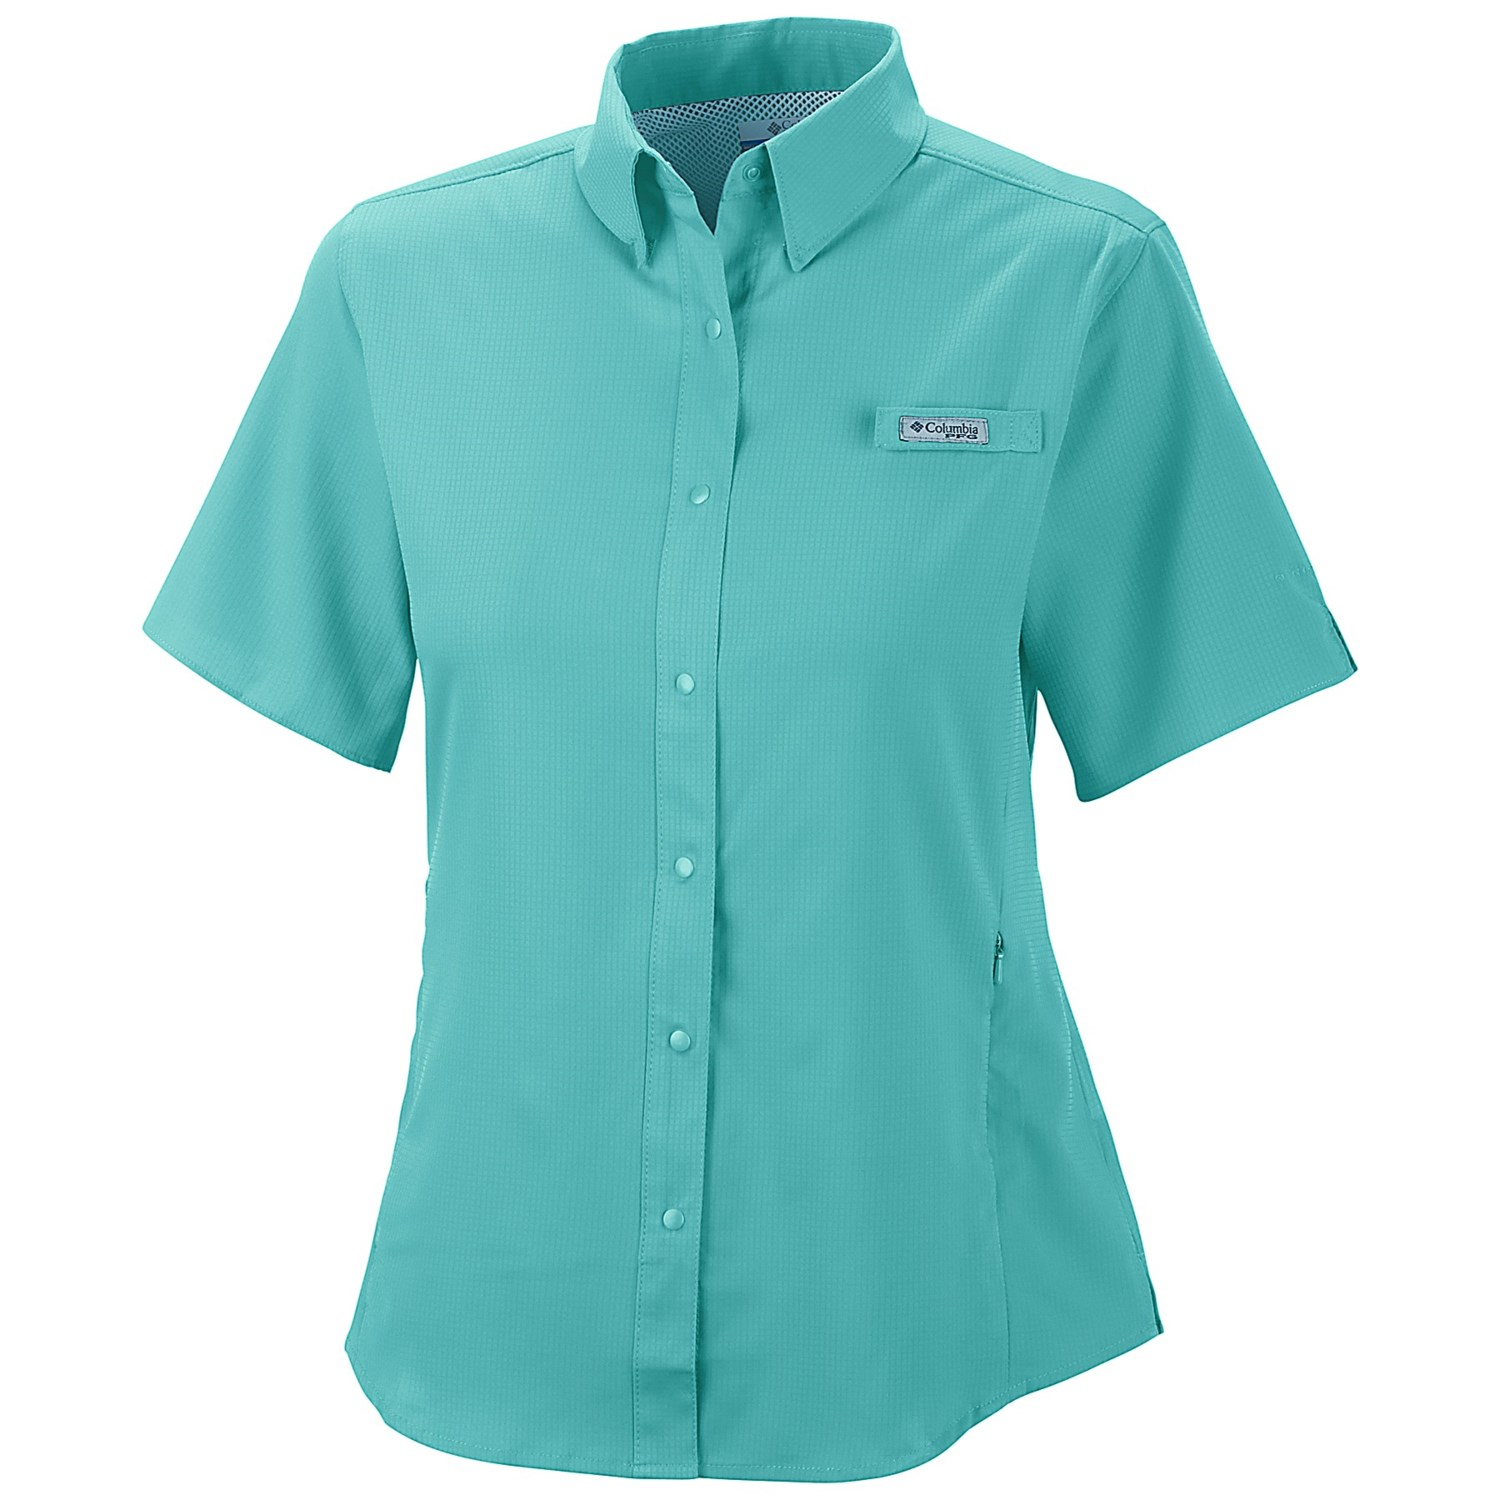 Columbia sportswear pfg tamiami ii fishing shirt upf 40 Columbia womens fishing shirt